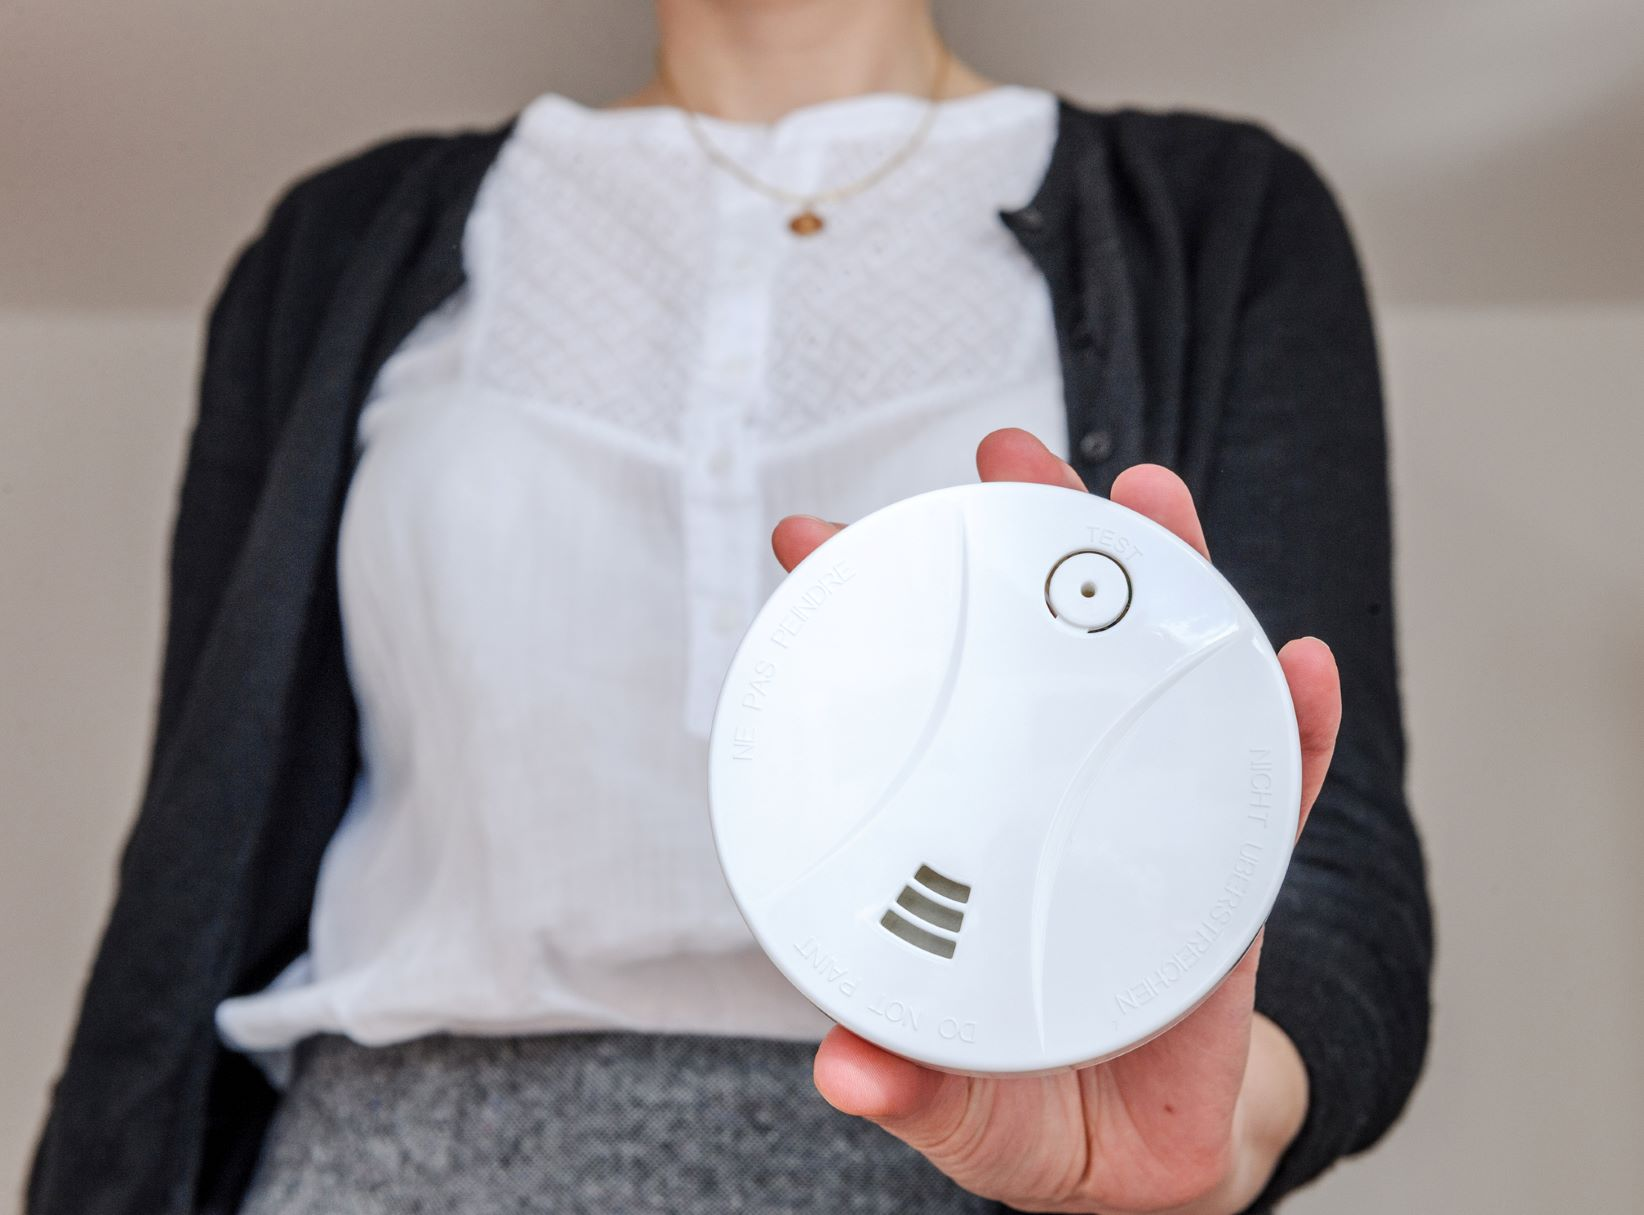 wireless interconnected smoke detectors